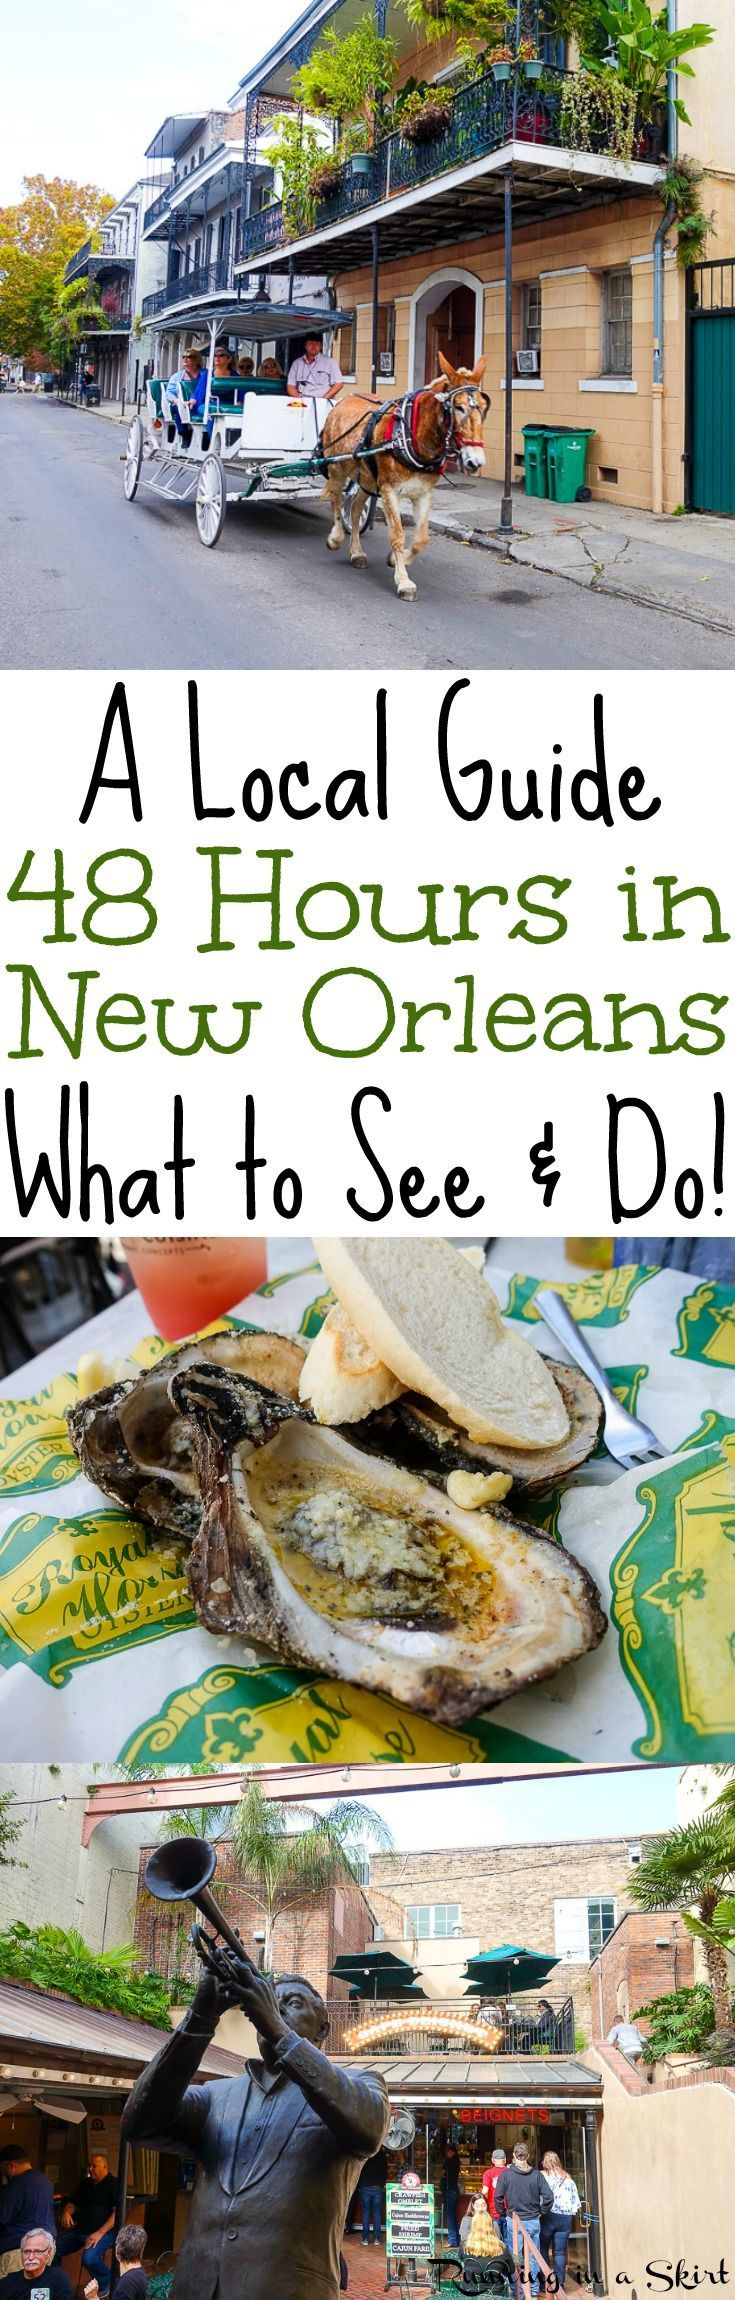 Things to Do in New Orleans - a 48 hour travel guide by locals!  What to do in the French Quarter, Bourbon Street, Garden District, restaurants, shopping... where to stay in and the best hotels!  Tips to plan your NOLA vacation. / Running in a Skirt